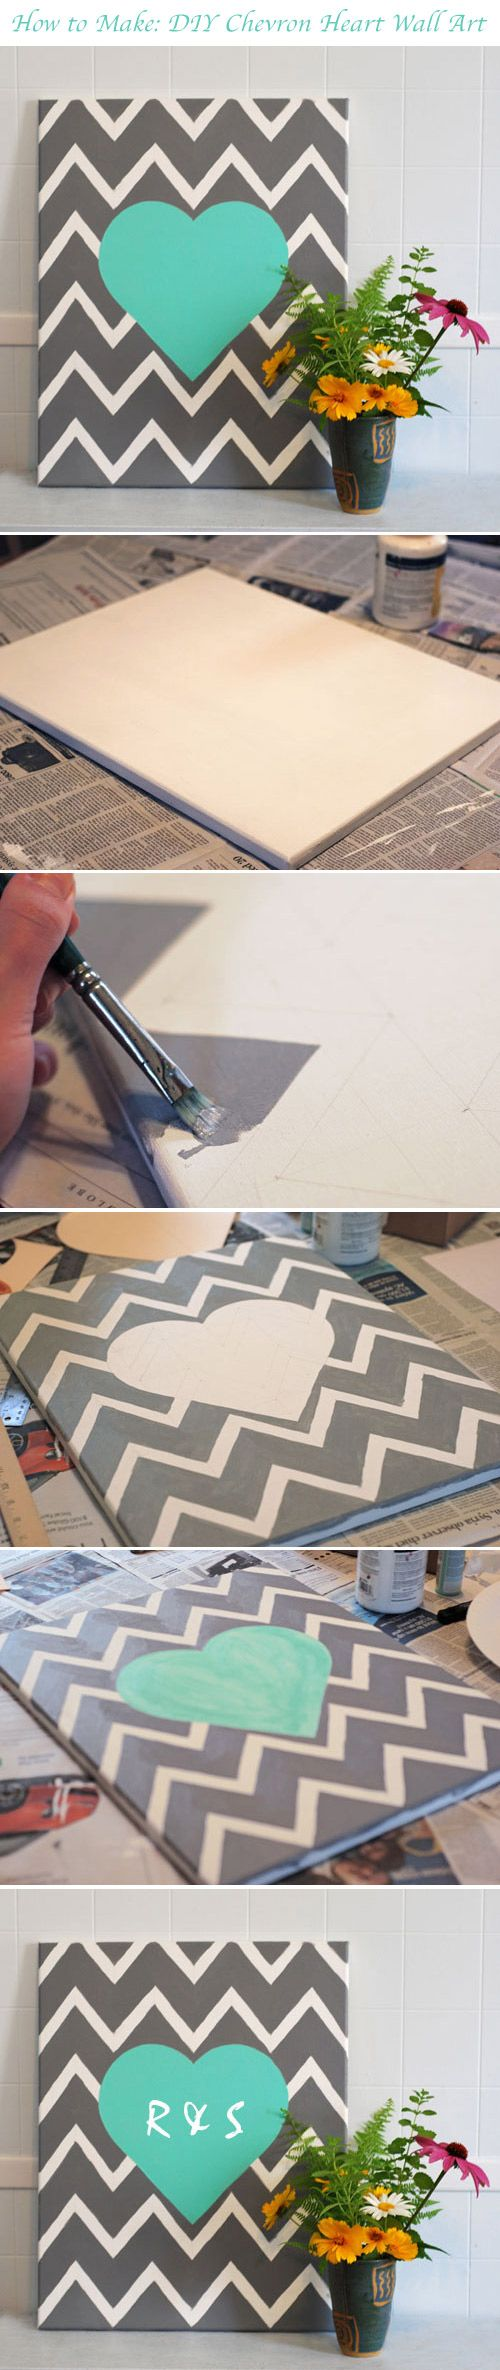 DIY Chevron Heart Wall Art - find the tutorial here!  http://www.weddingwindow.com/blog/2012/07/23/diy-chevron-heart-wall-hanging/